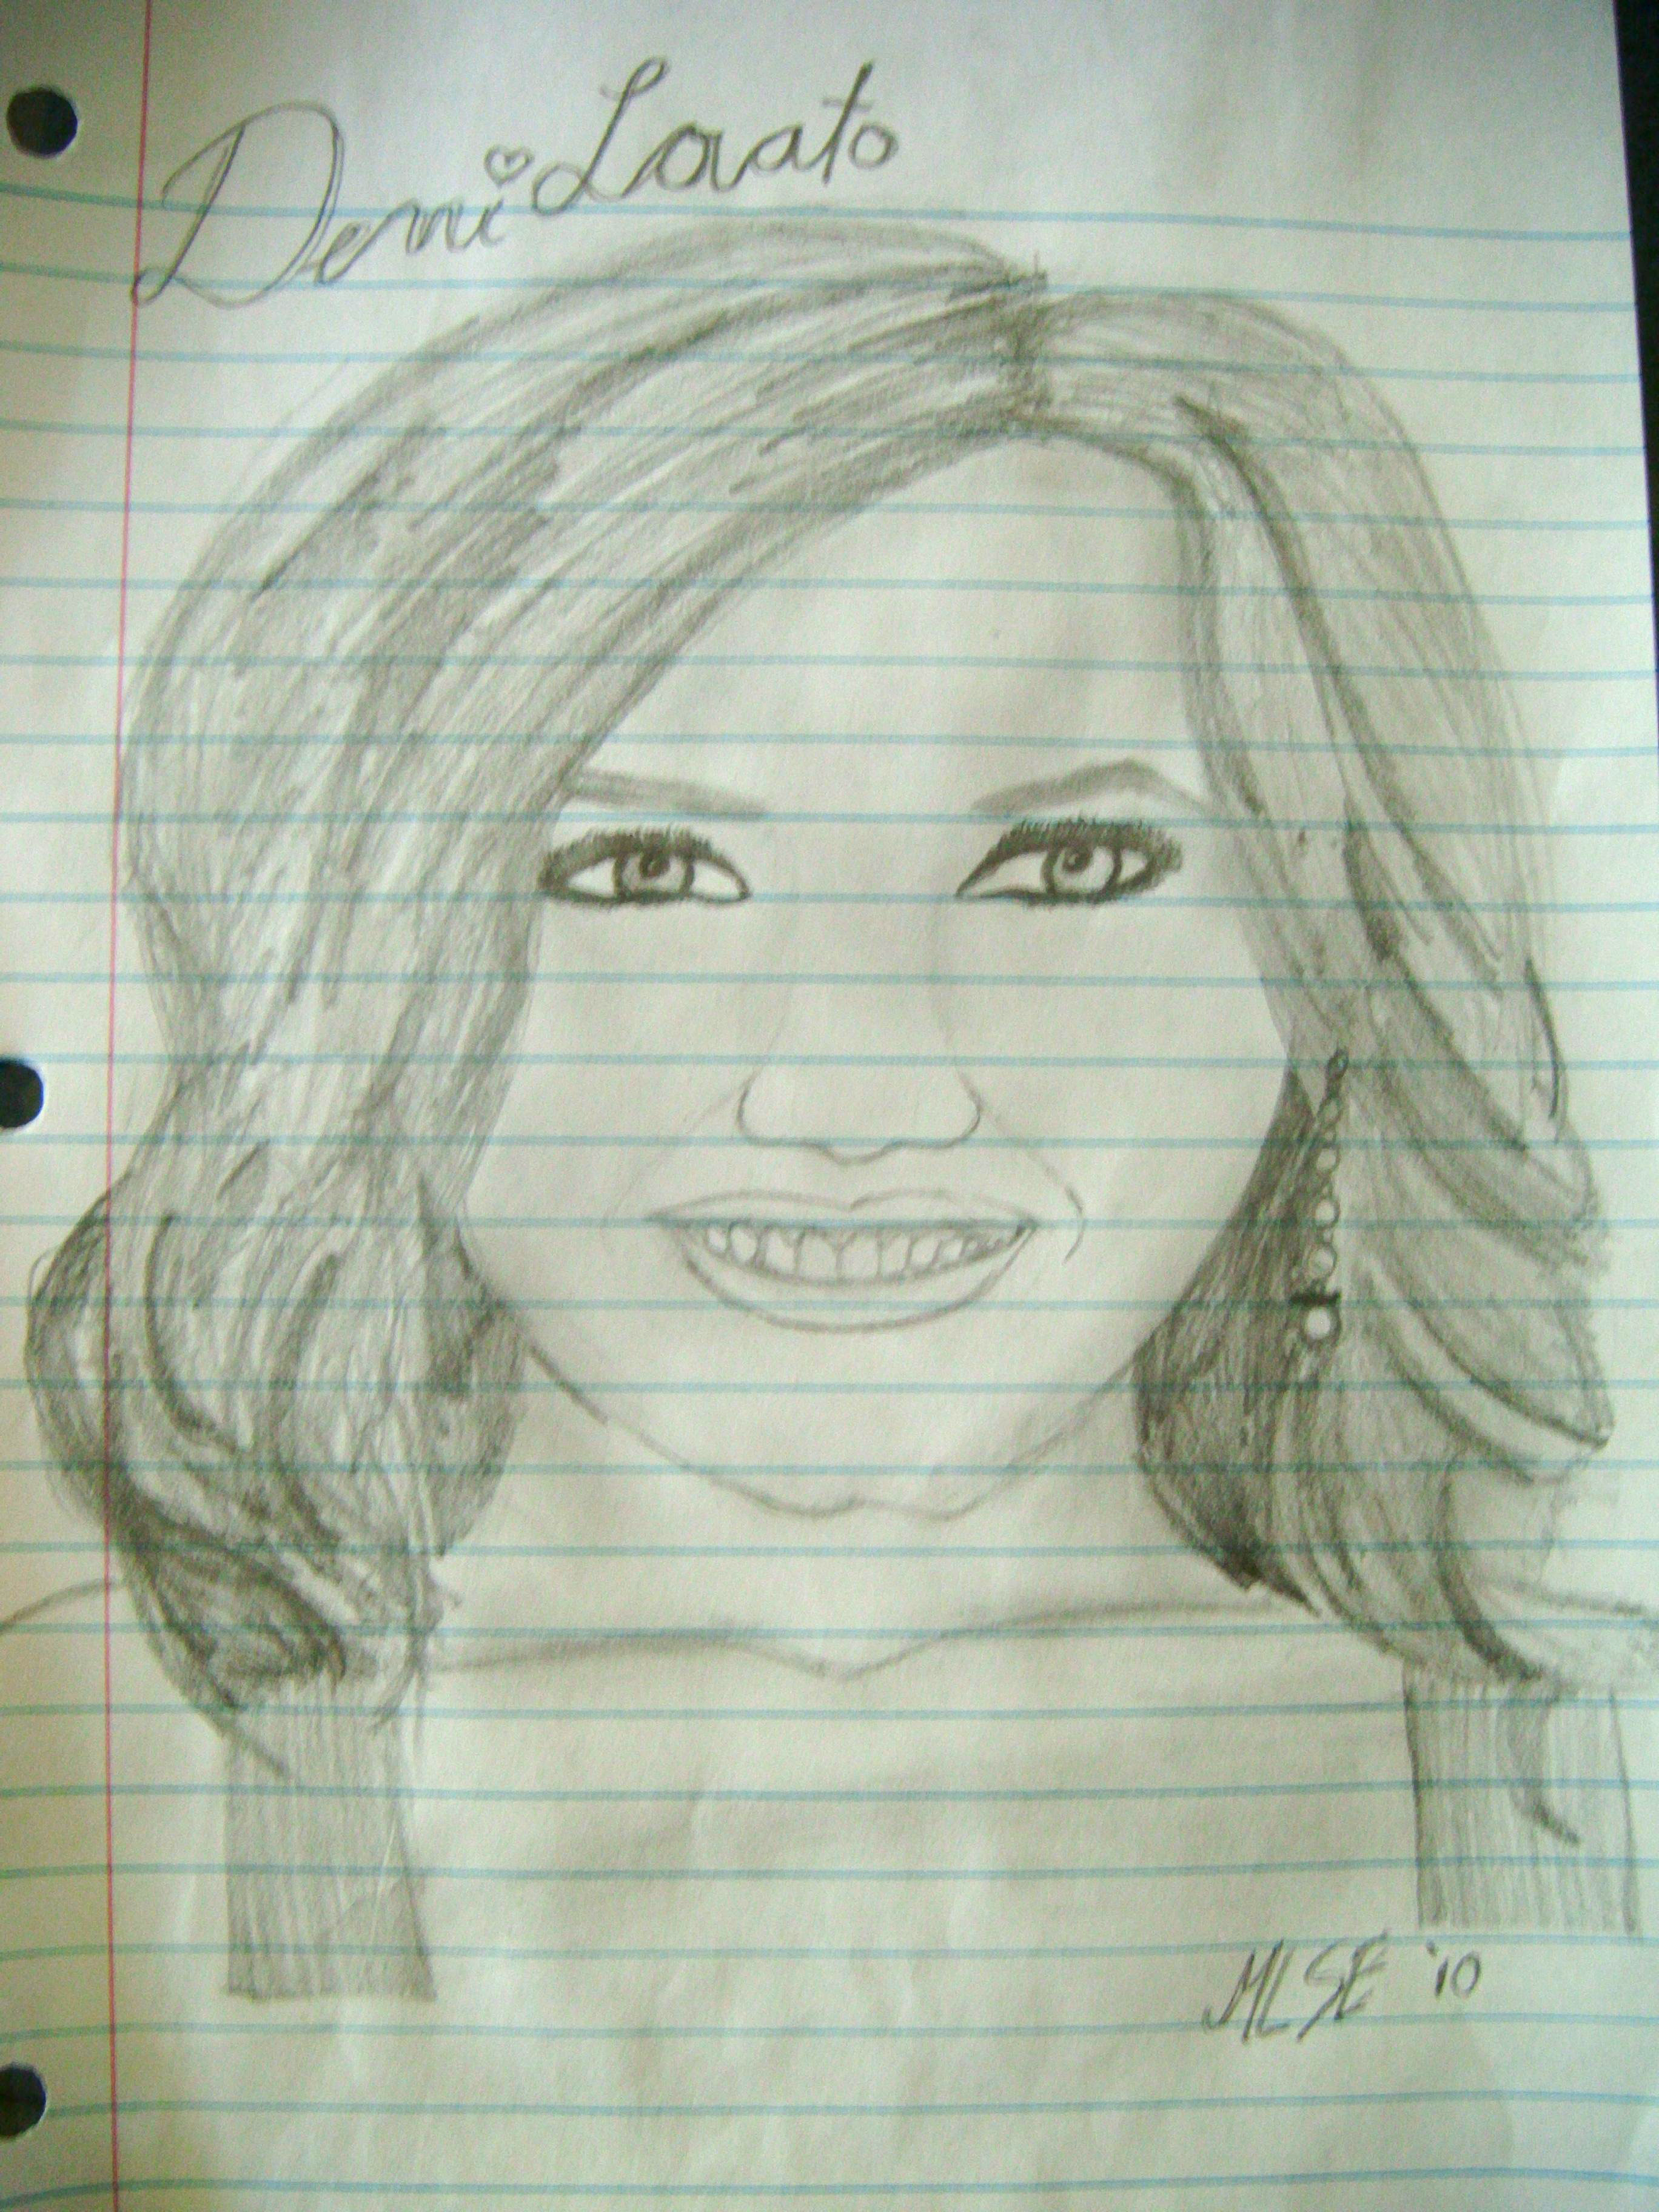 Maria's Drawing of Demi Lovato